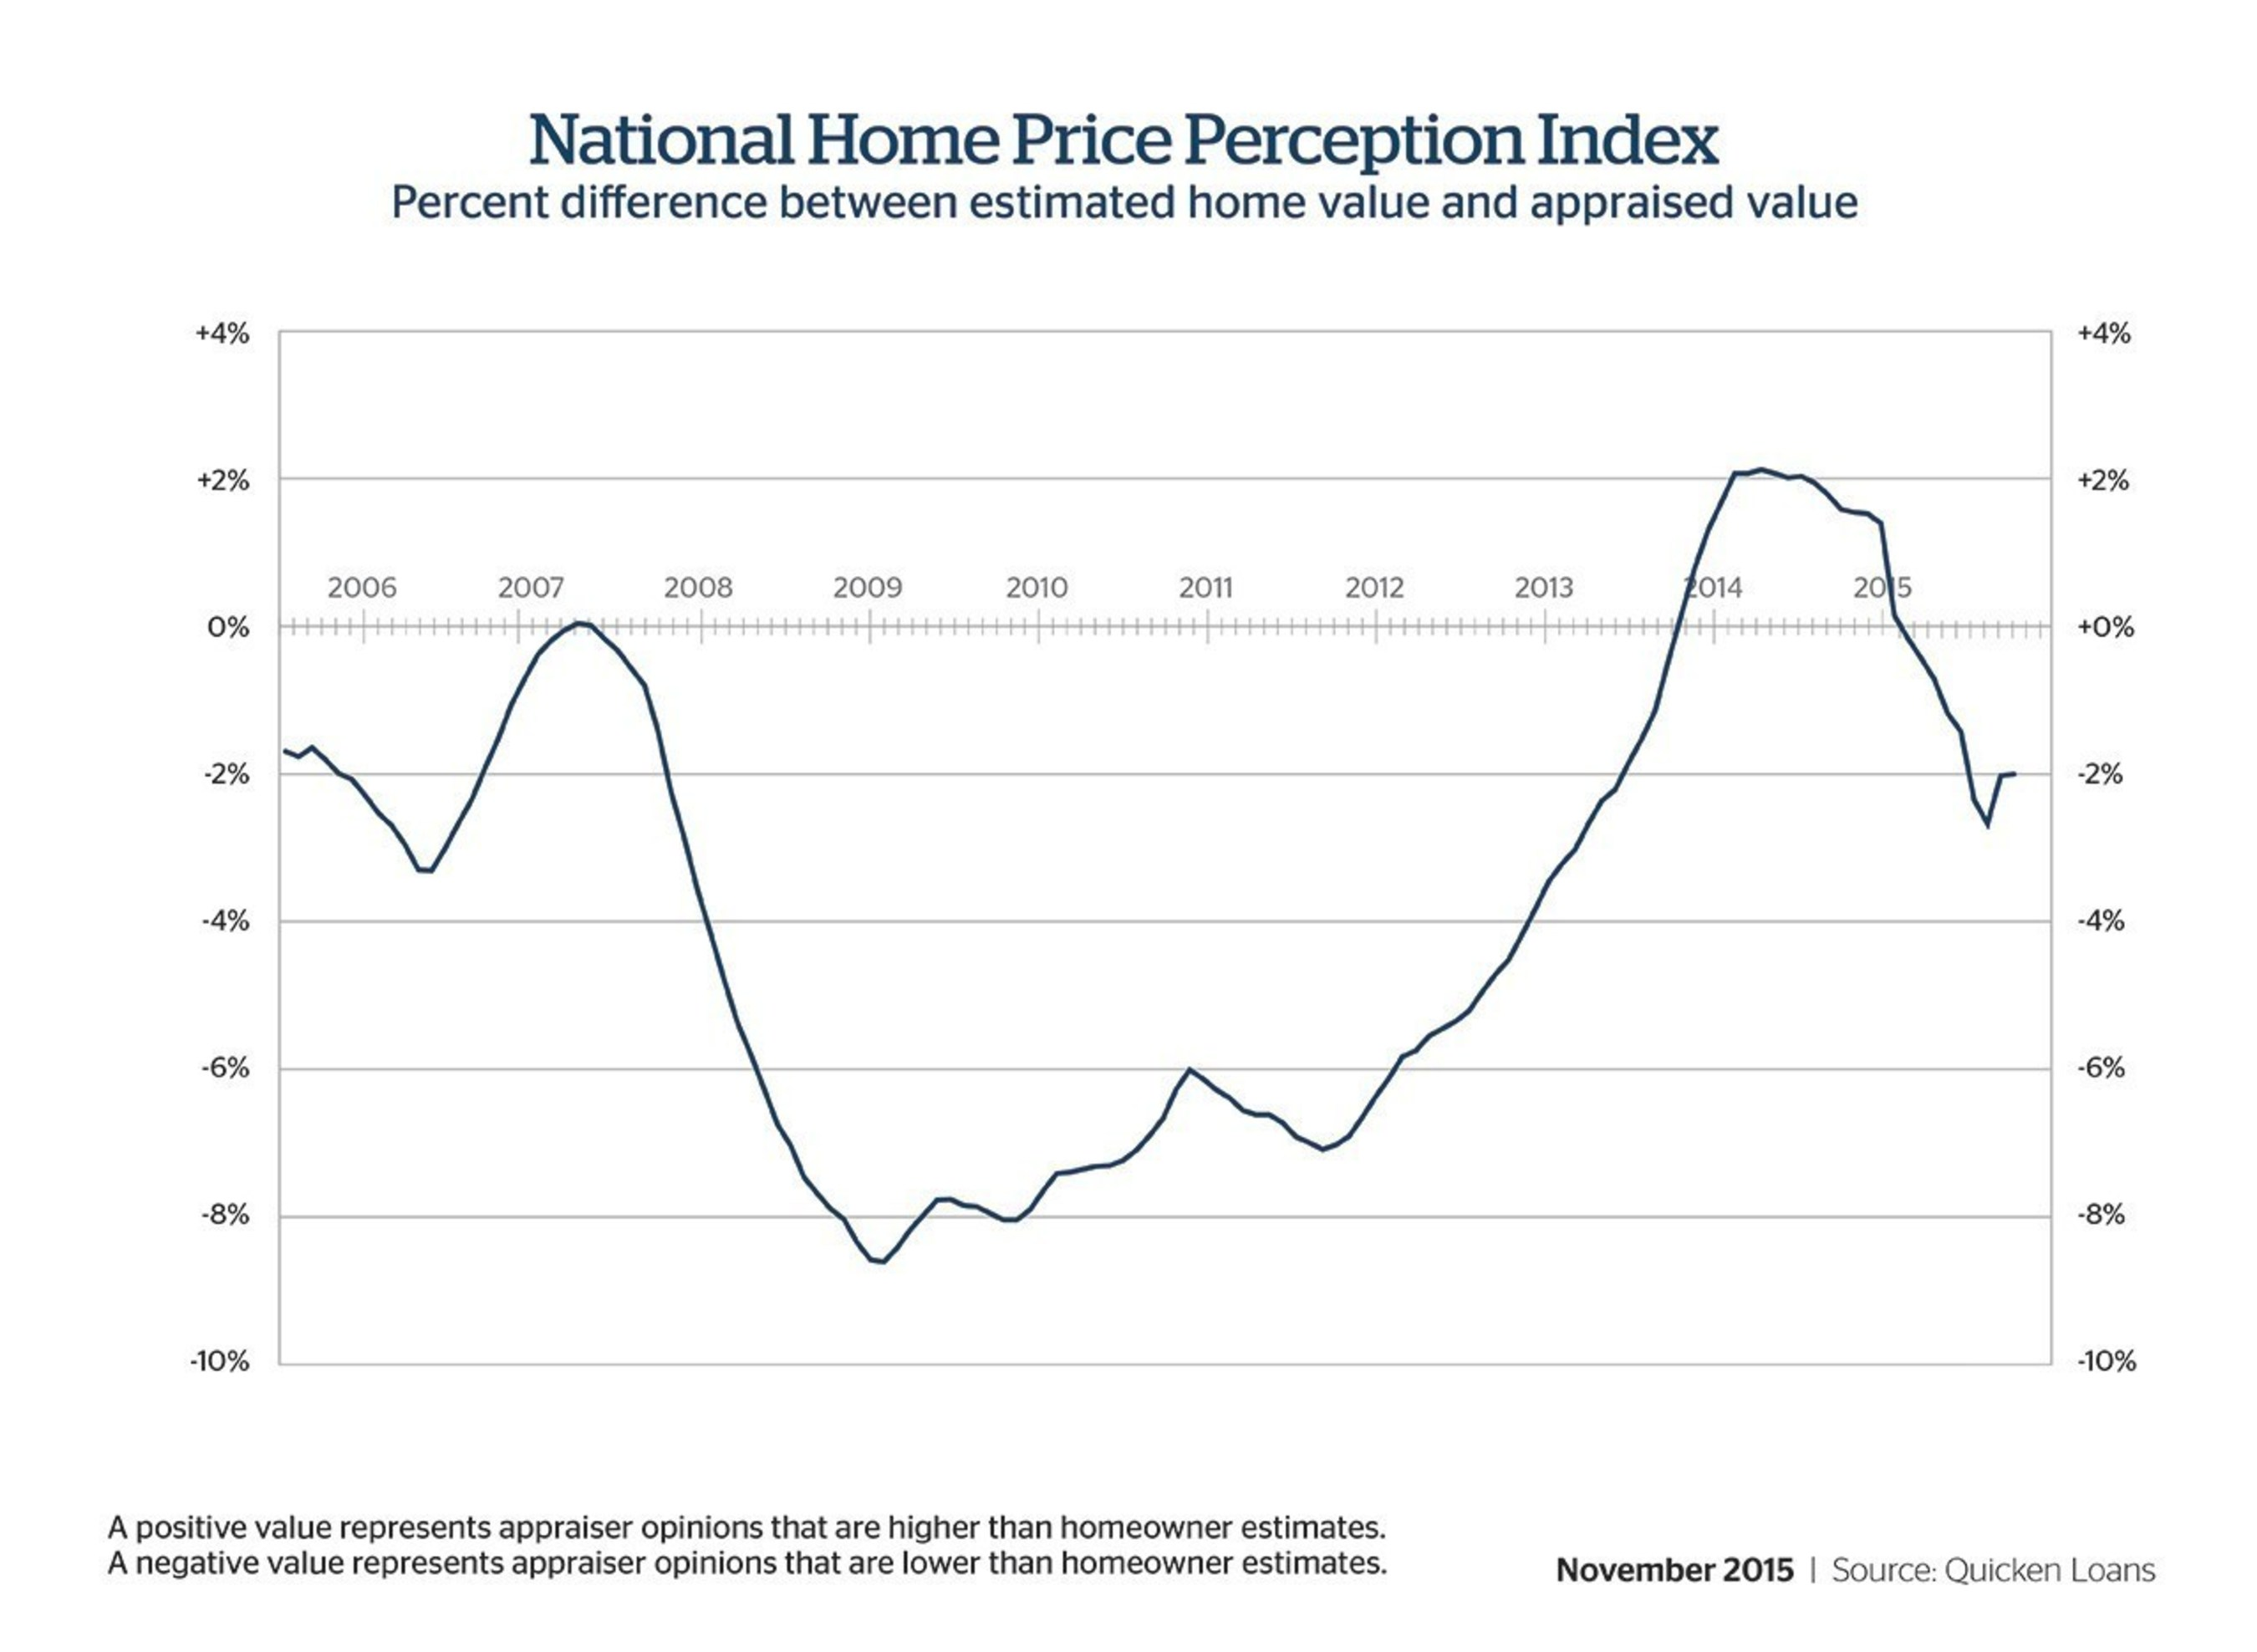 Perception Gap Between Homeowner and Appraiser Valuation Narrows Slightly in October